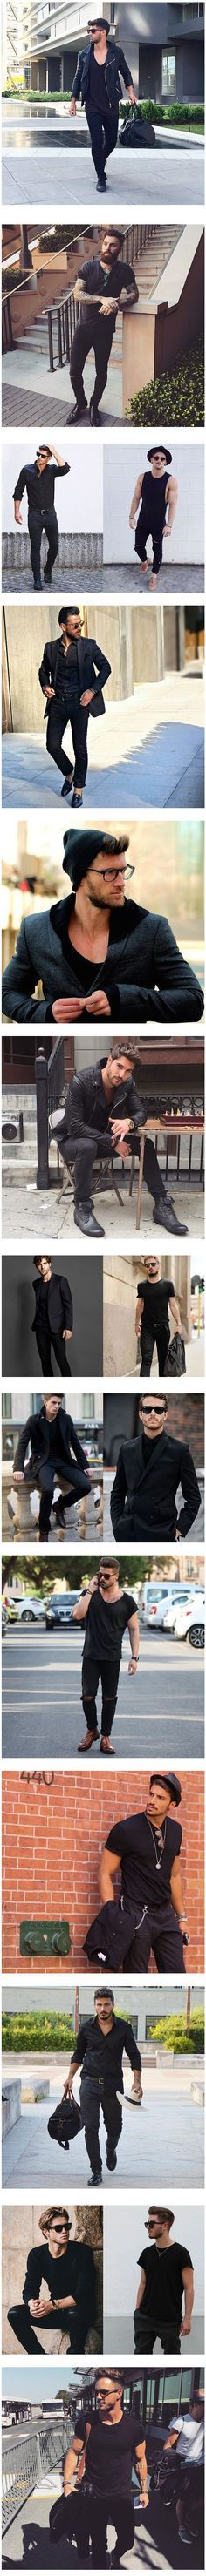 Many more like this can be found at the website! Give it a look for what we pick best for each Trendy Men& Fashion Young Black Trendy Mens Fashion, Fashion Moda, Stylish Men, Urban Fashion, Men's Fashion, Men With Street Style, Men Street, Style Masculin, Outfits Hombre